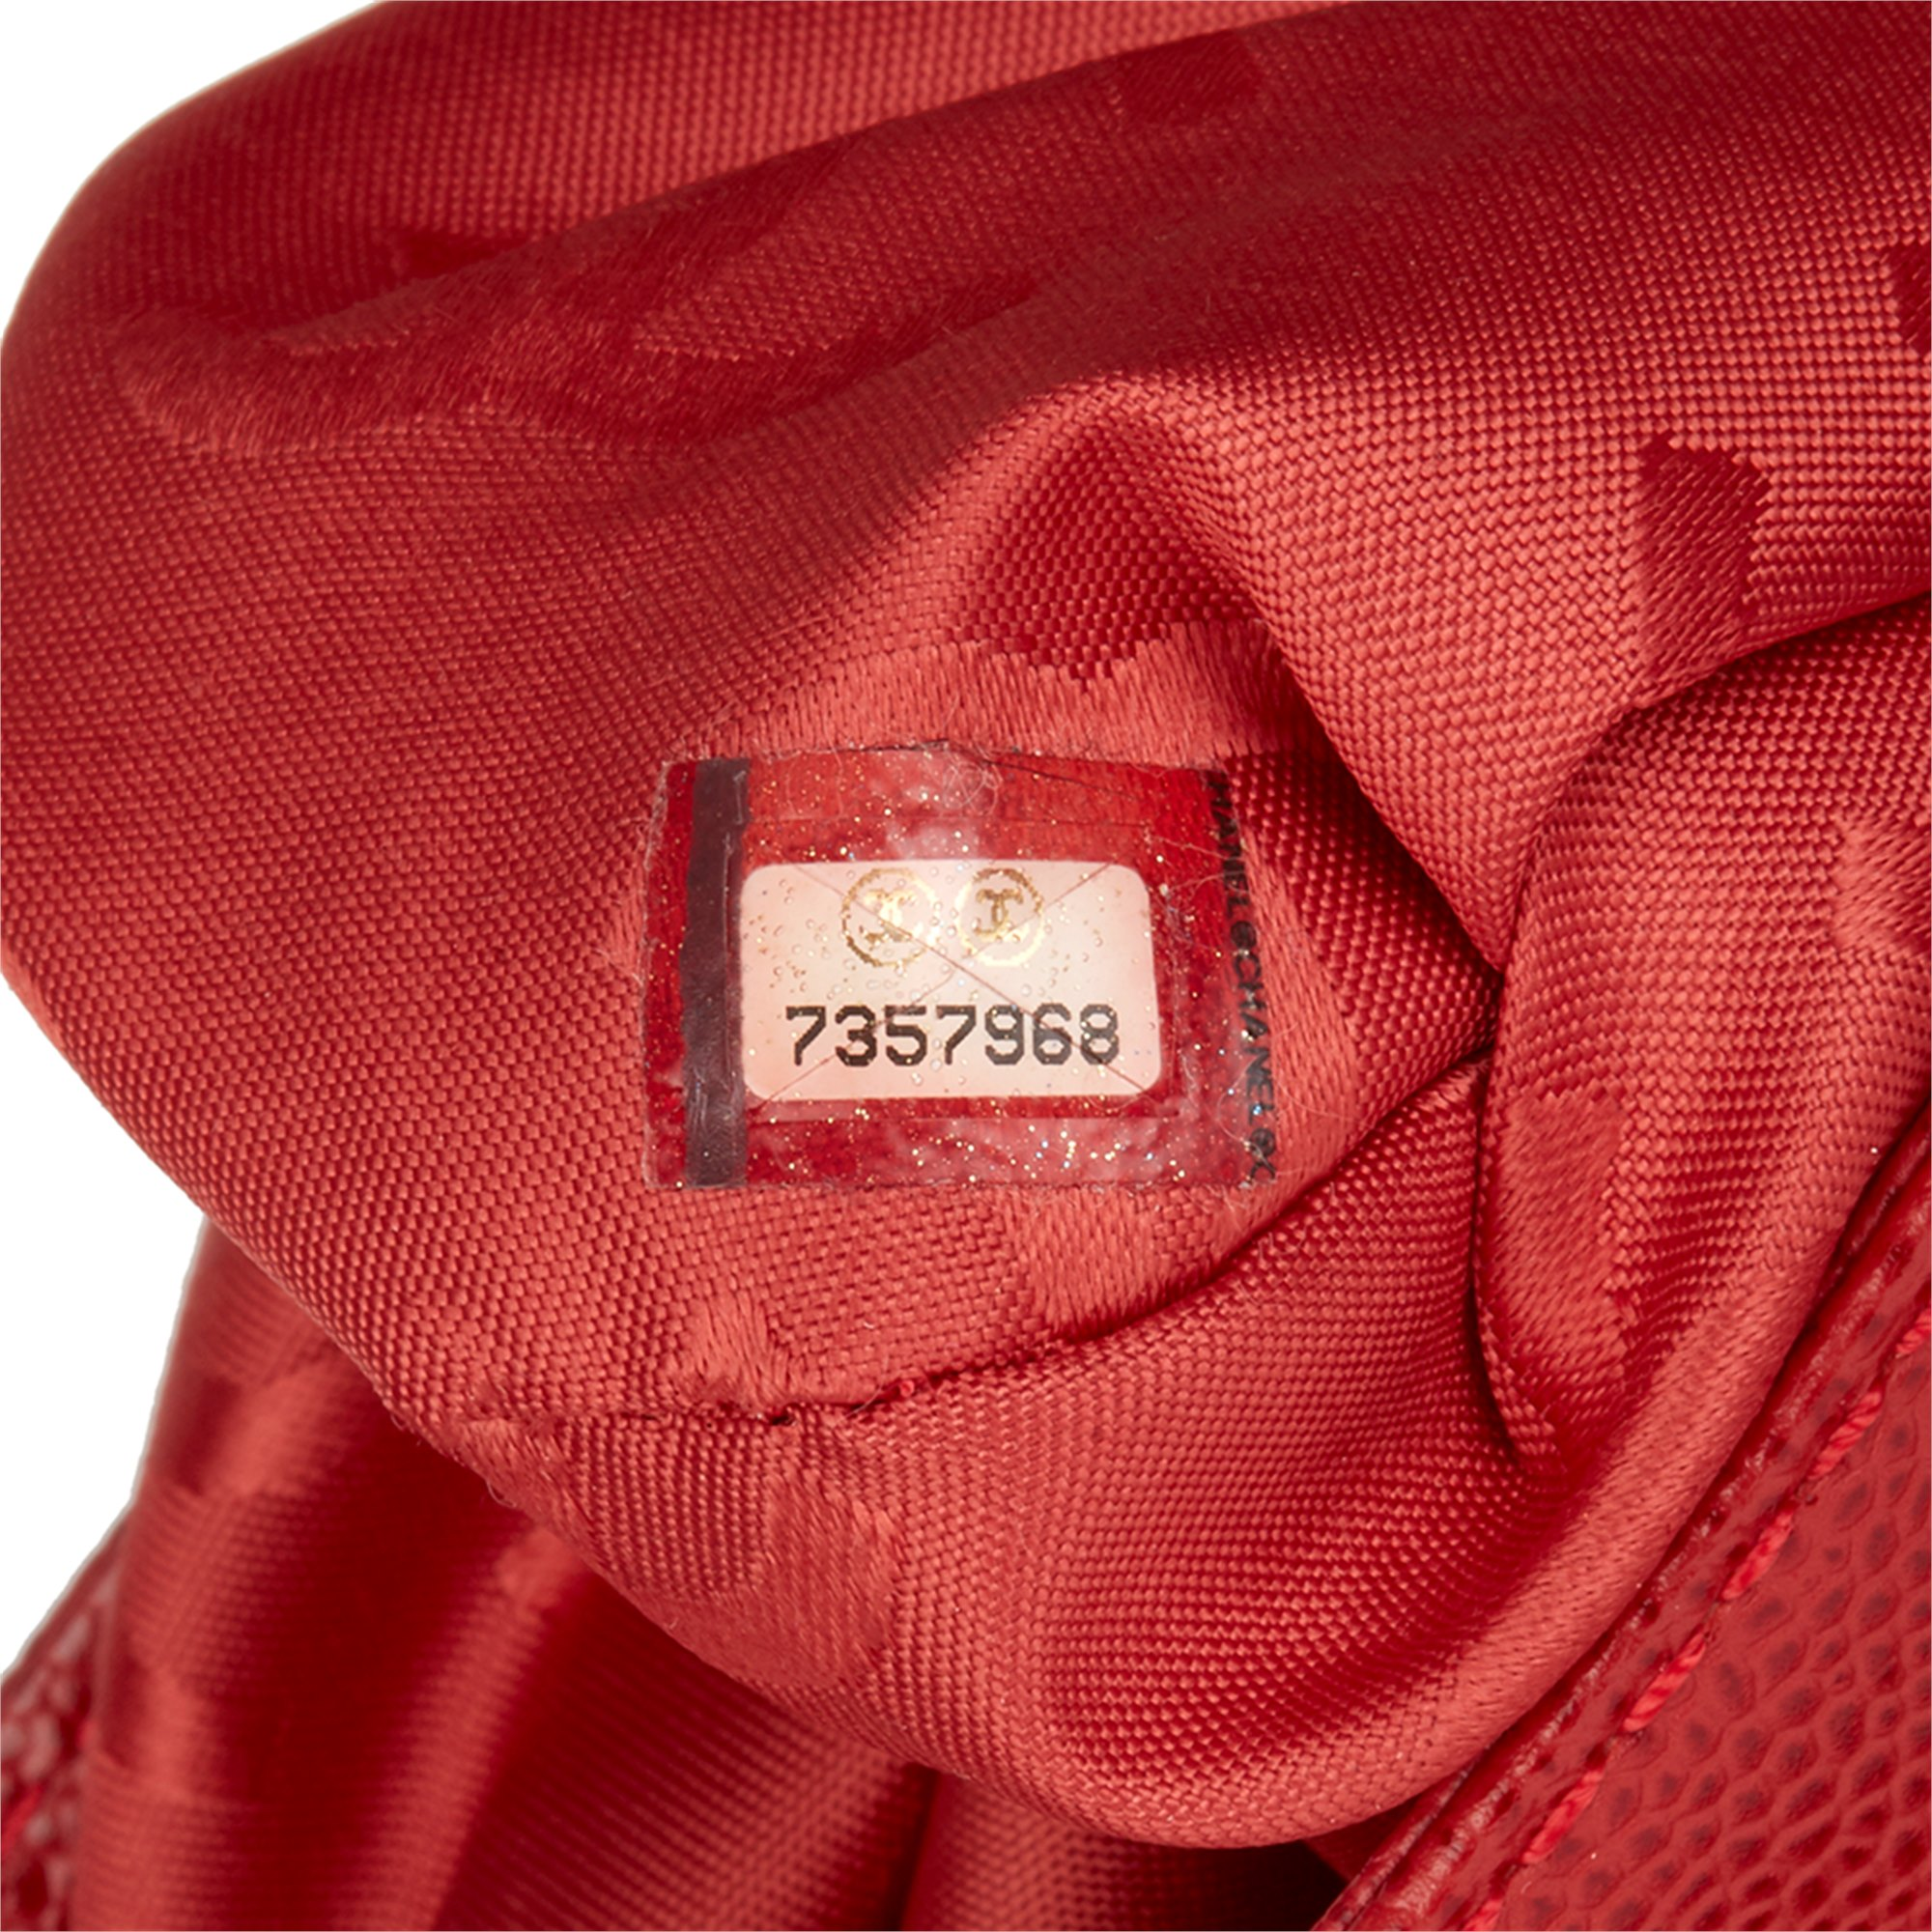 Chanel Red Caviar Leather Timeless Tote